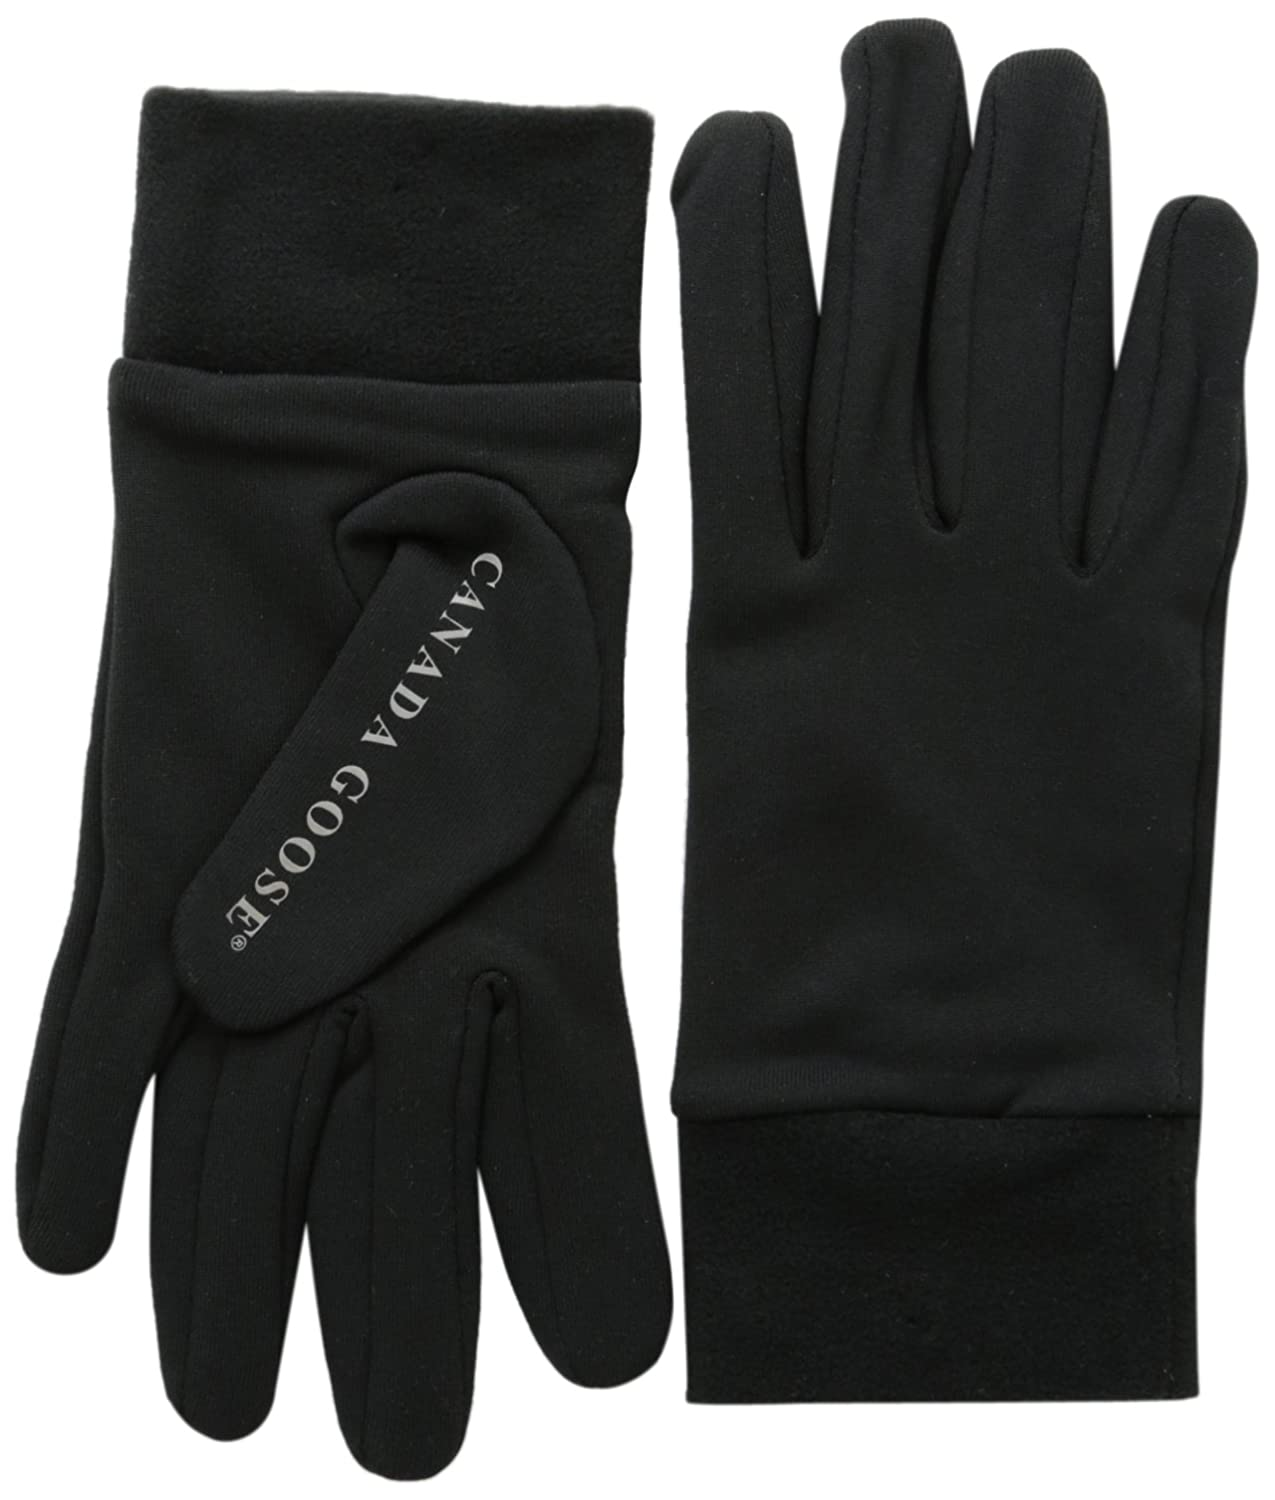 canada goose men's northern liner glove